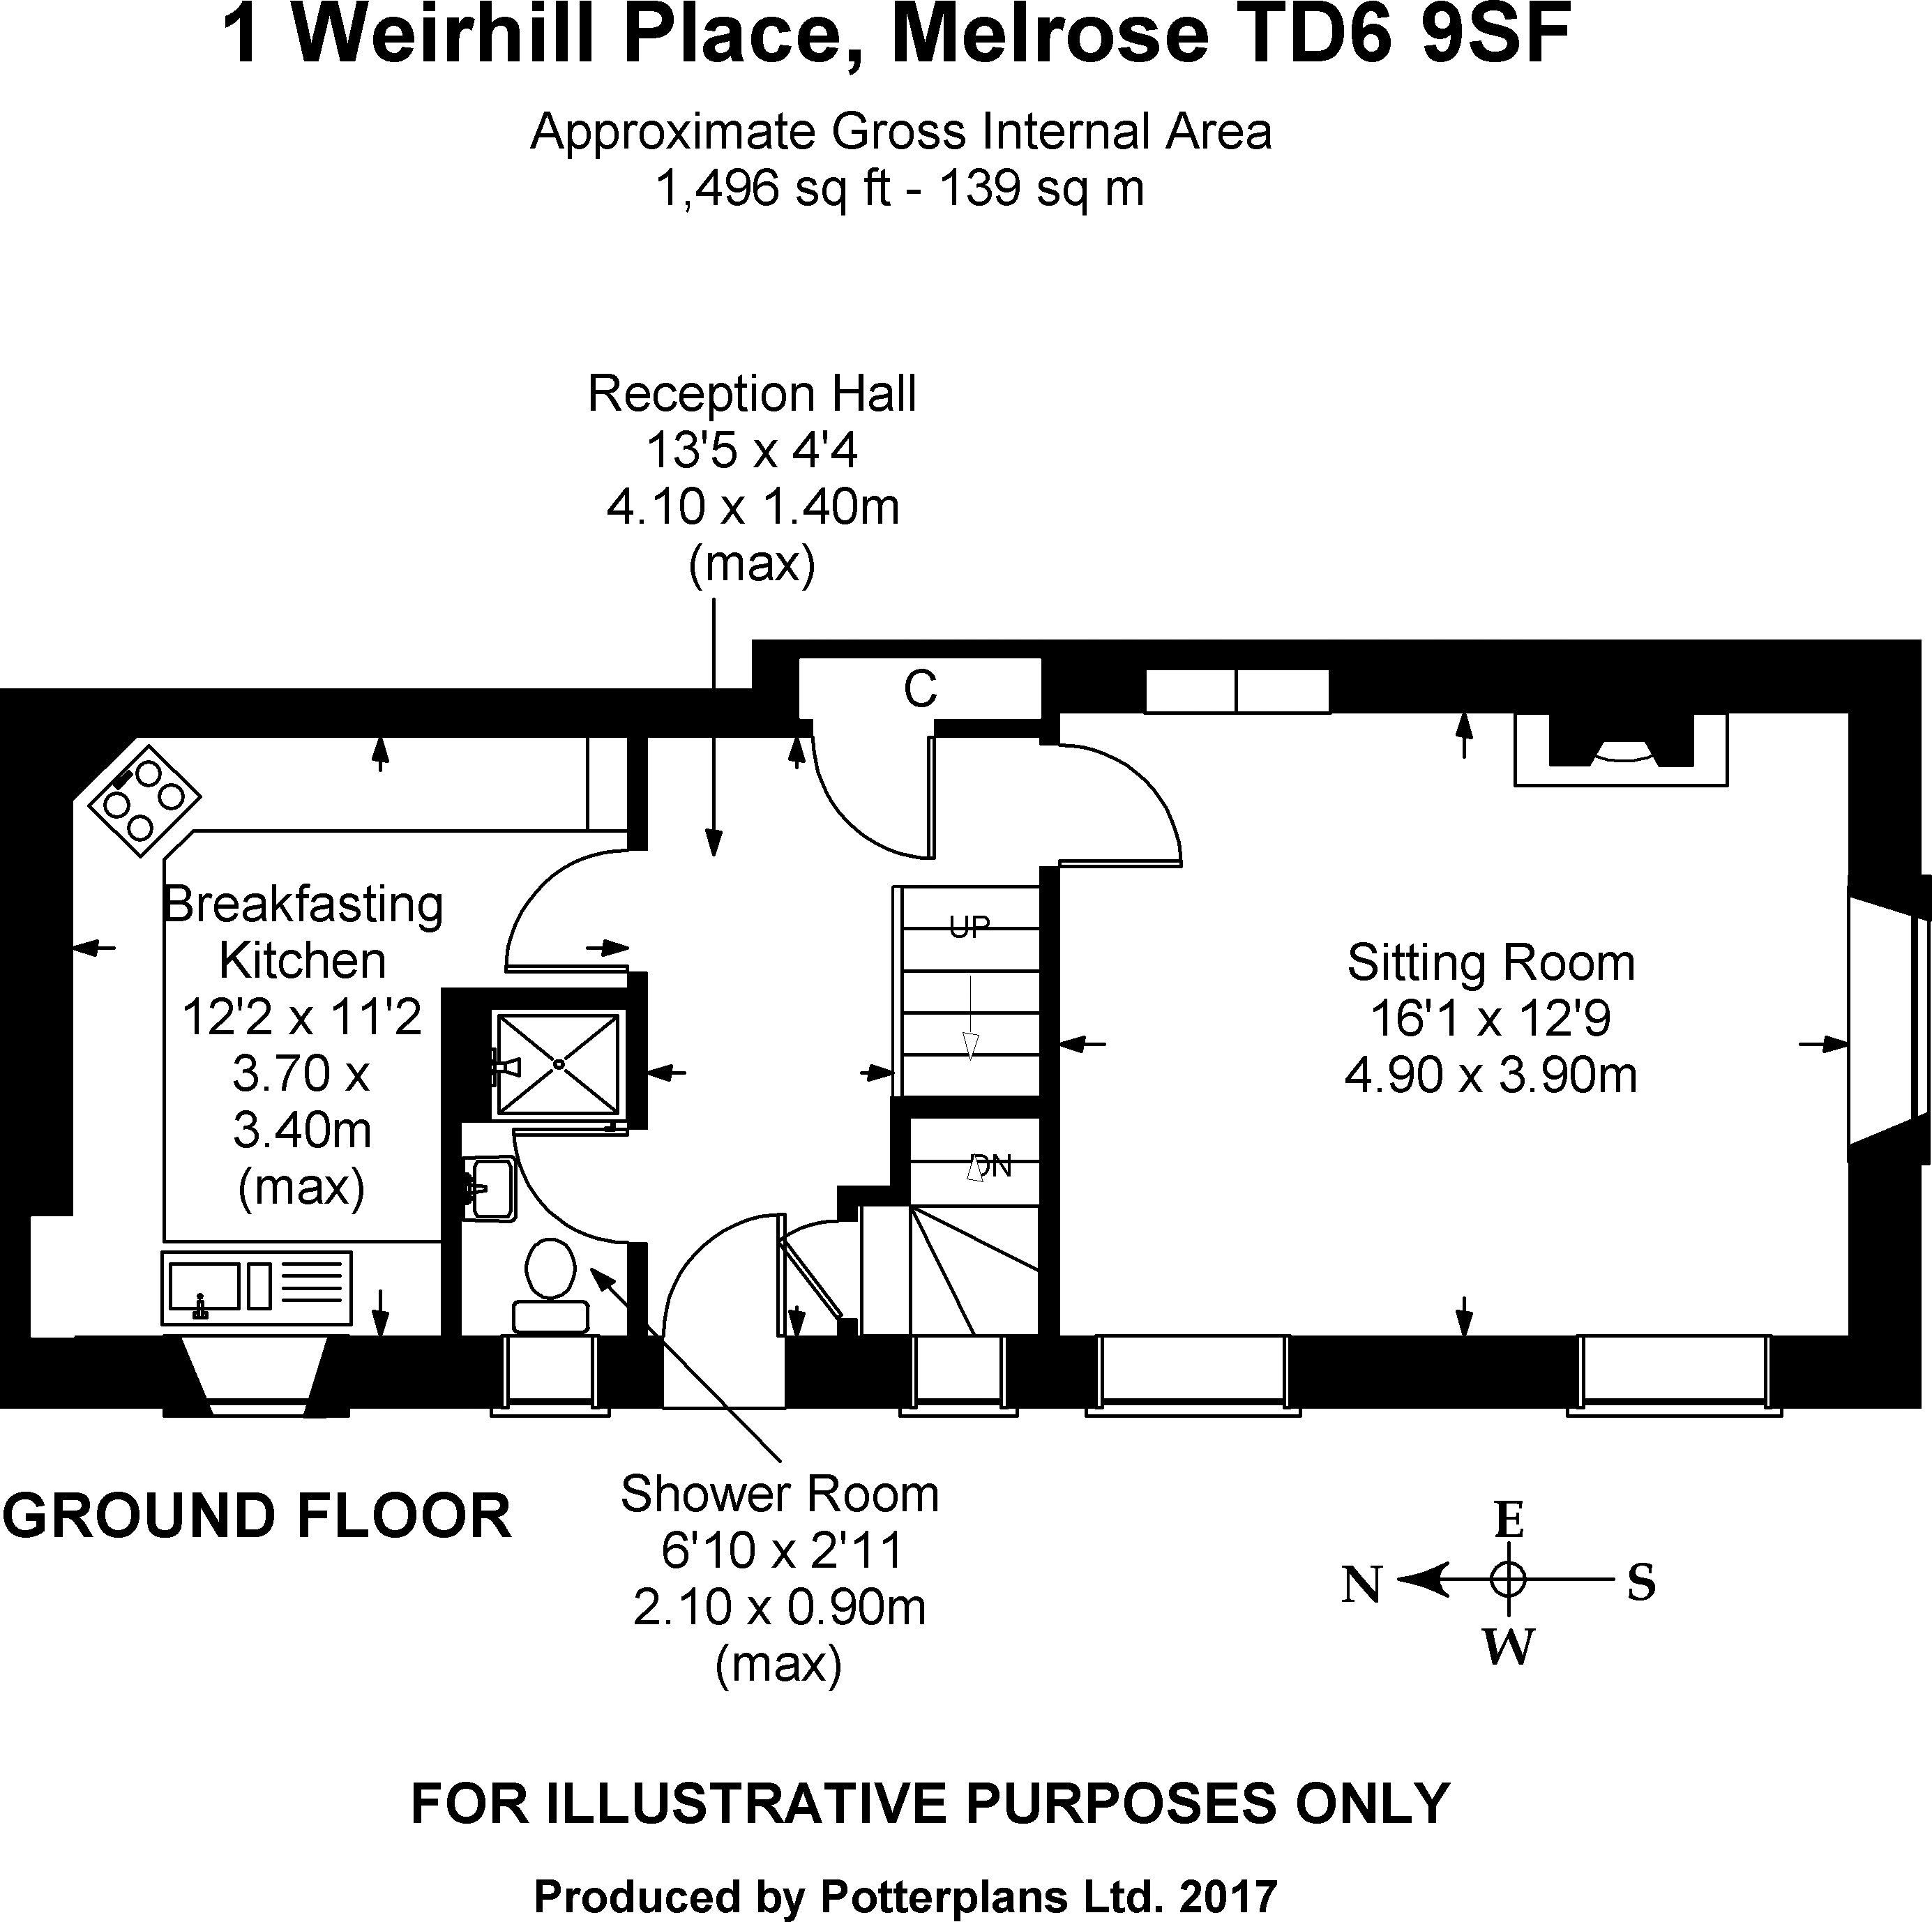 1 Weirhill Place Ground Floor